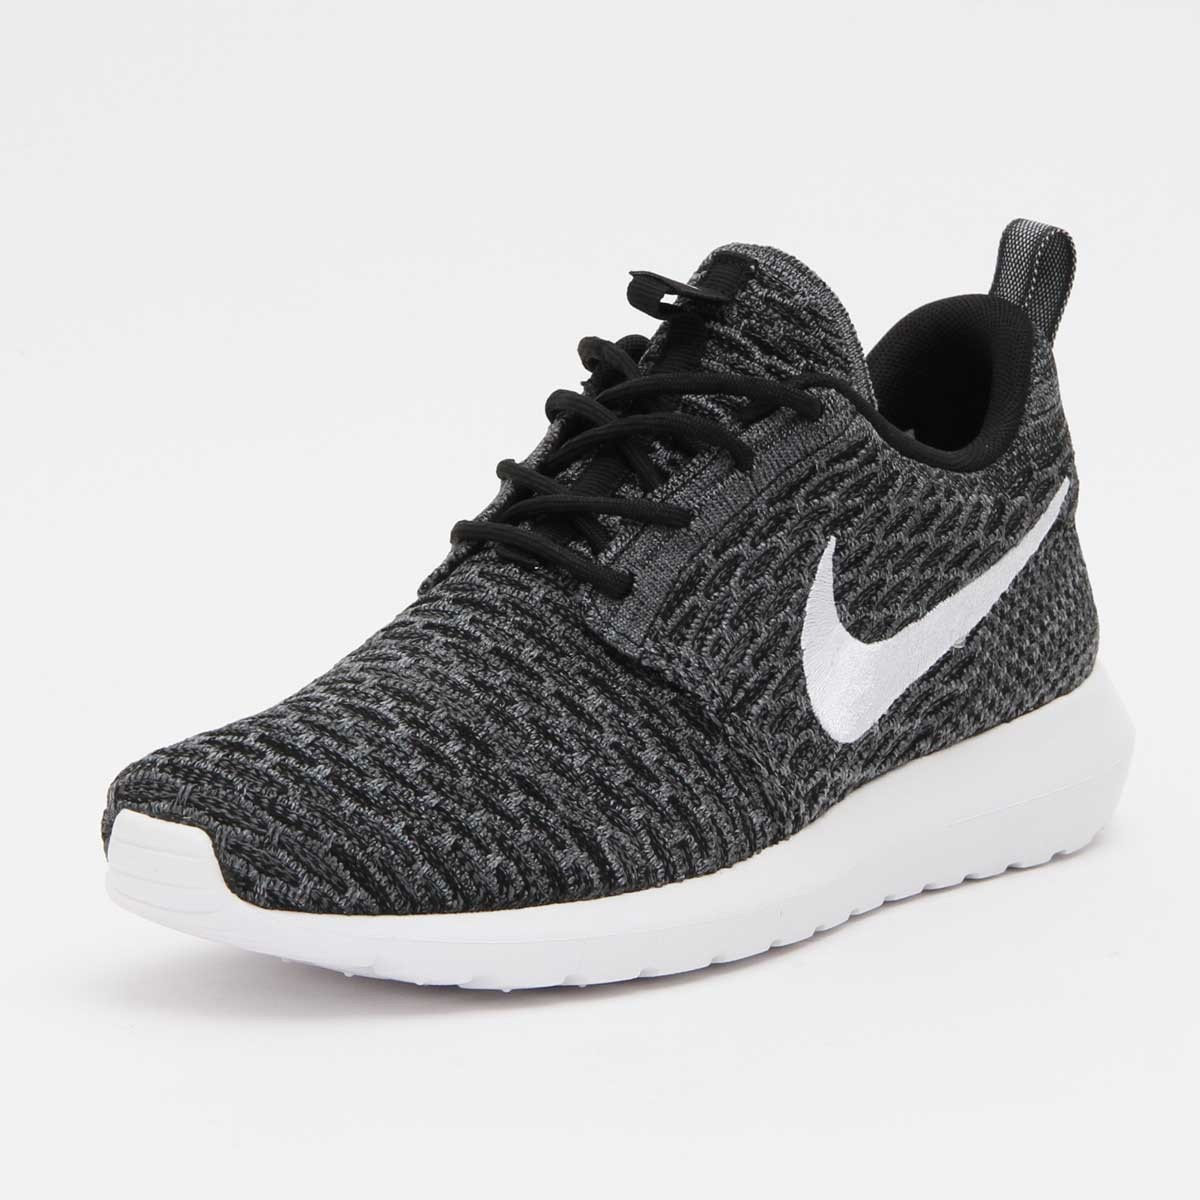 picked up united kingdom outlet store nike roshe run homme cdiscount | Benvenuto per comprare ...